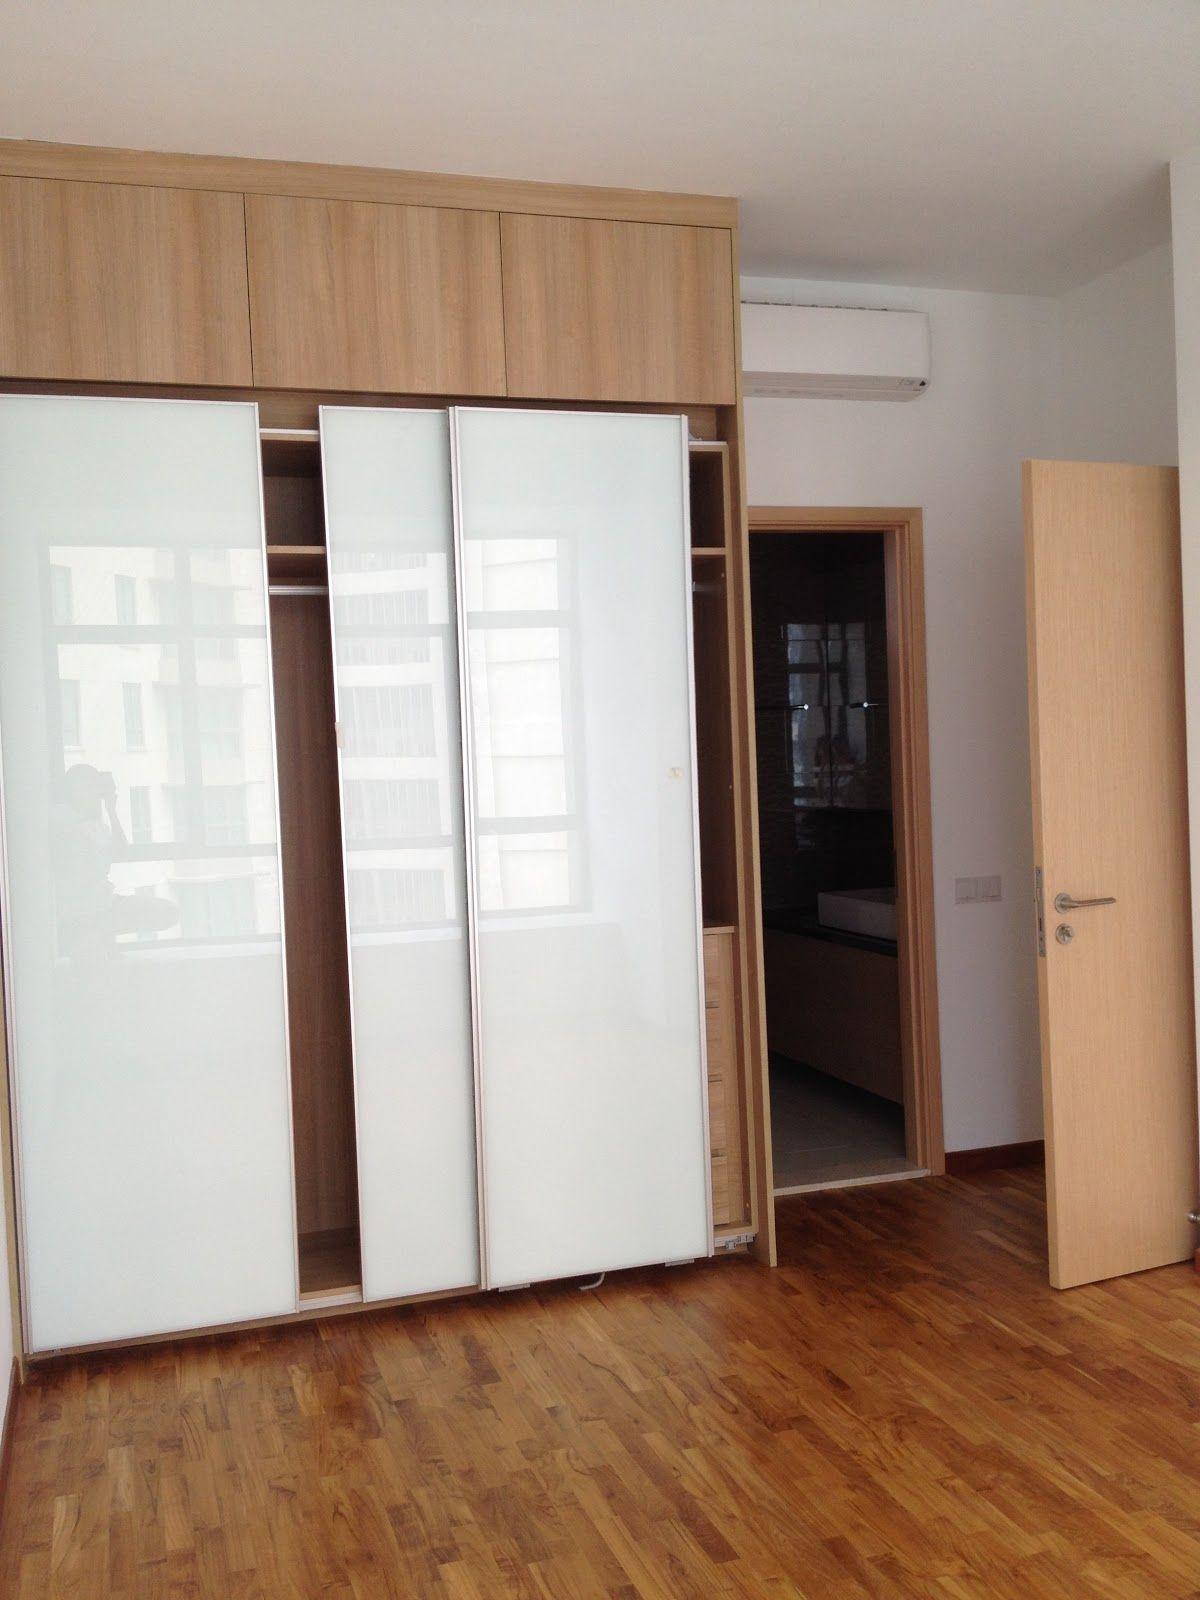 Glorious white glozzy sliding doors built in wardrobe on fake wooden floors in contemporary Wardrobe in master bedroom